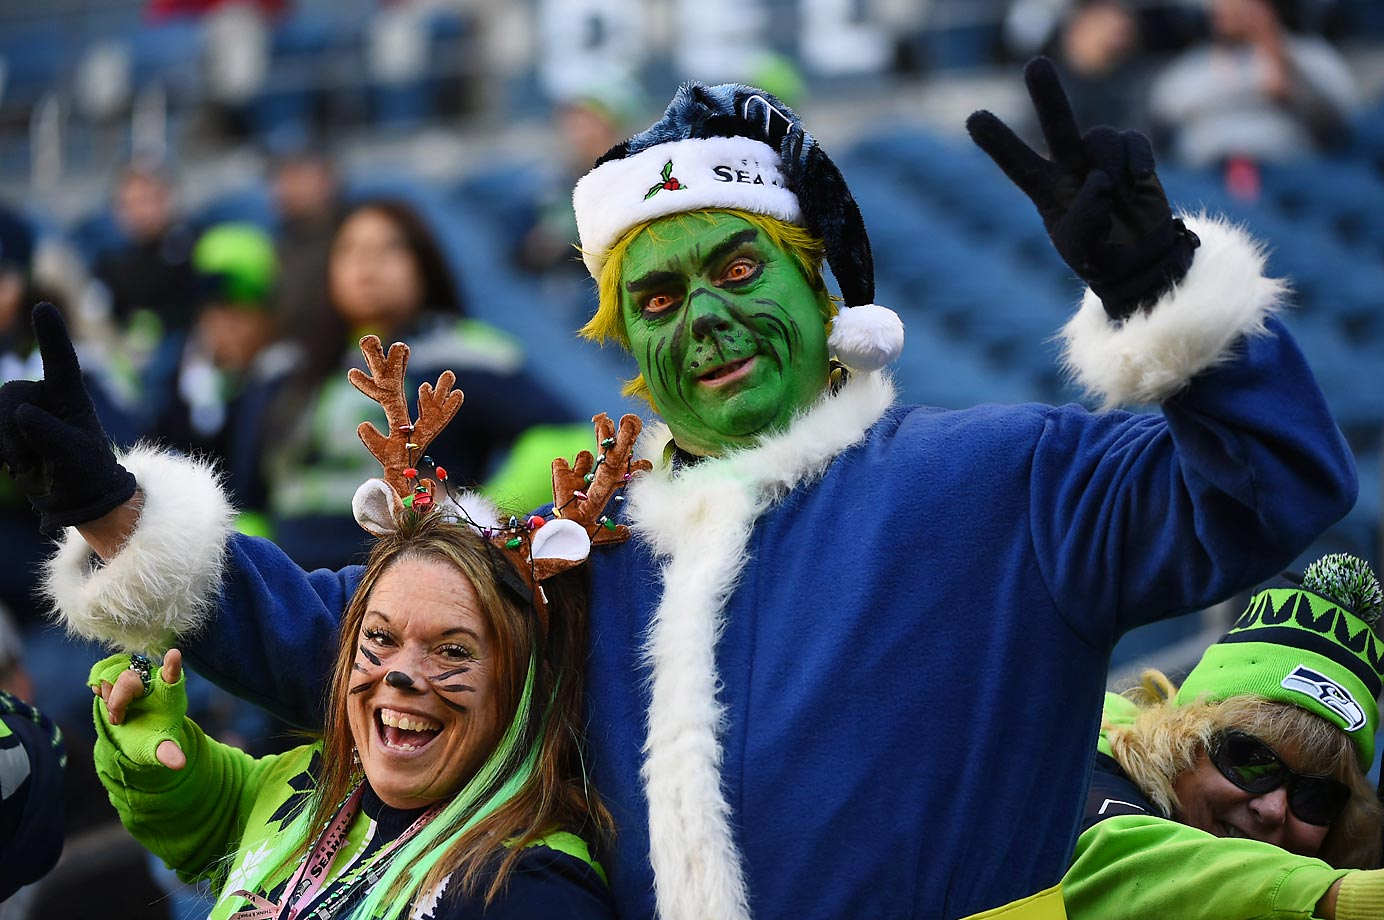 The Grinch, dressed as a Seahawks fan, made his appearance at the 49ers game in Seattle.